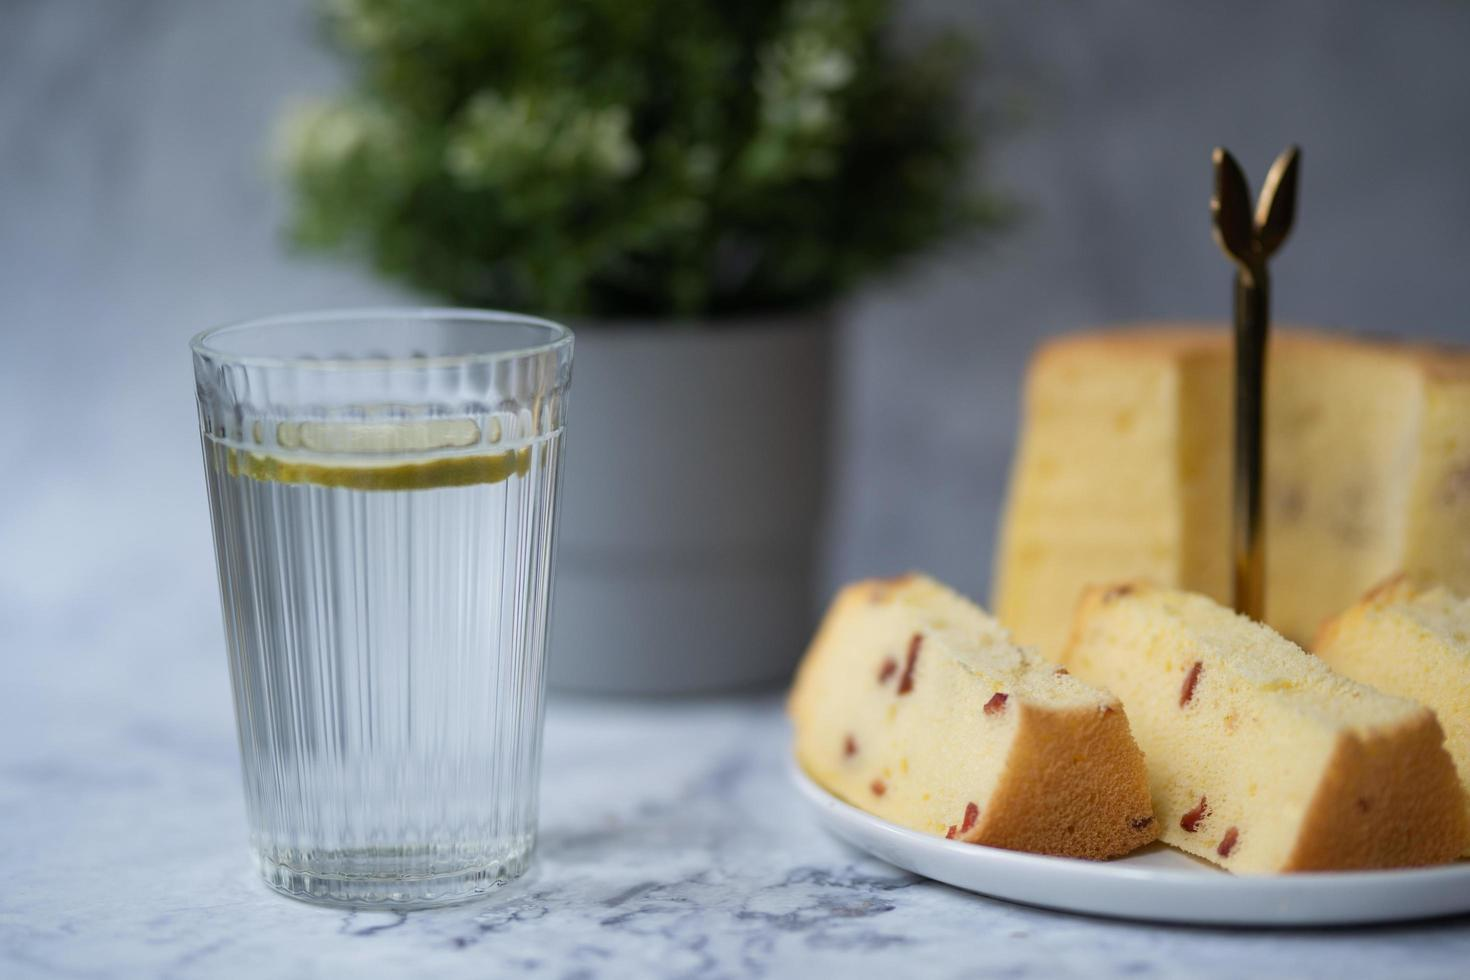 Glass of water with cake photo